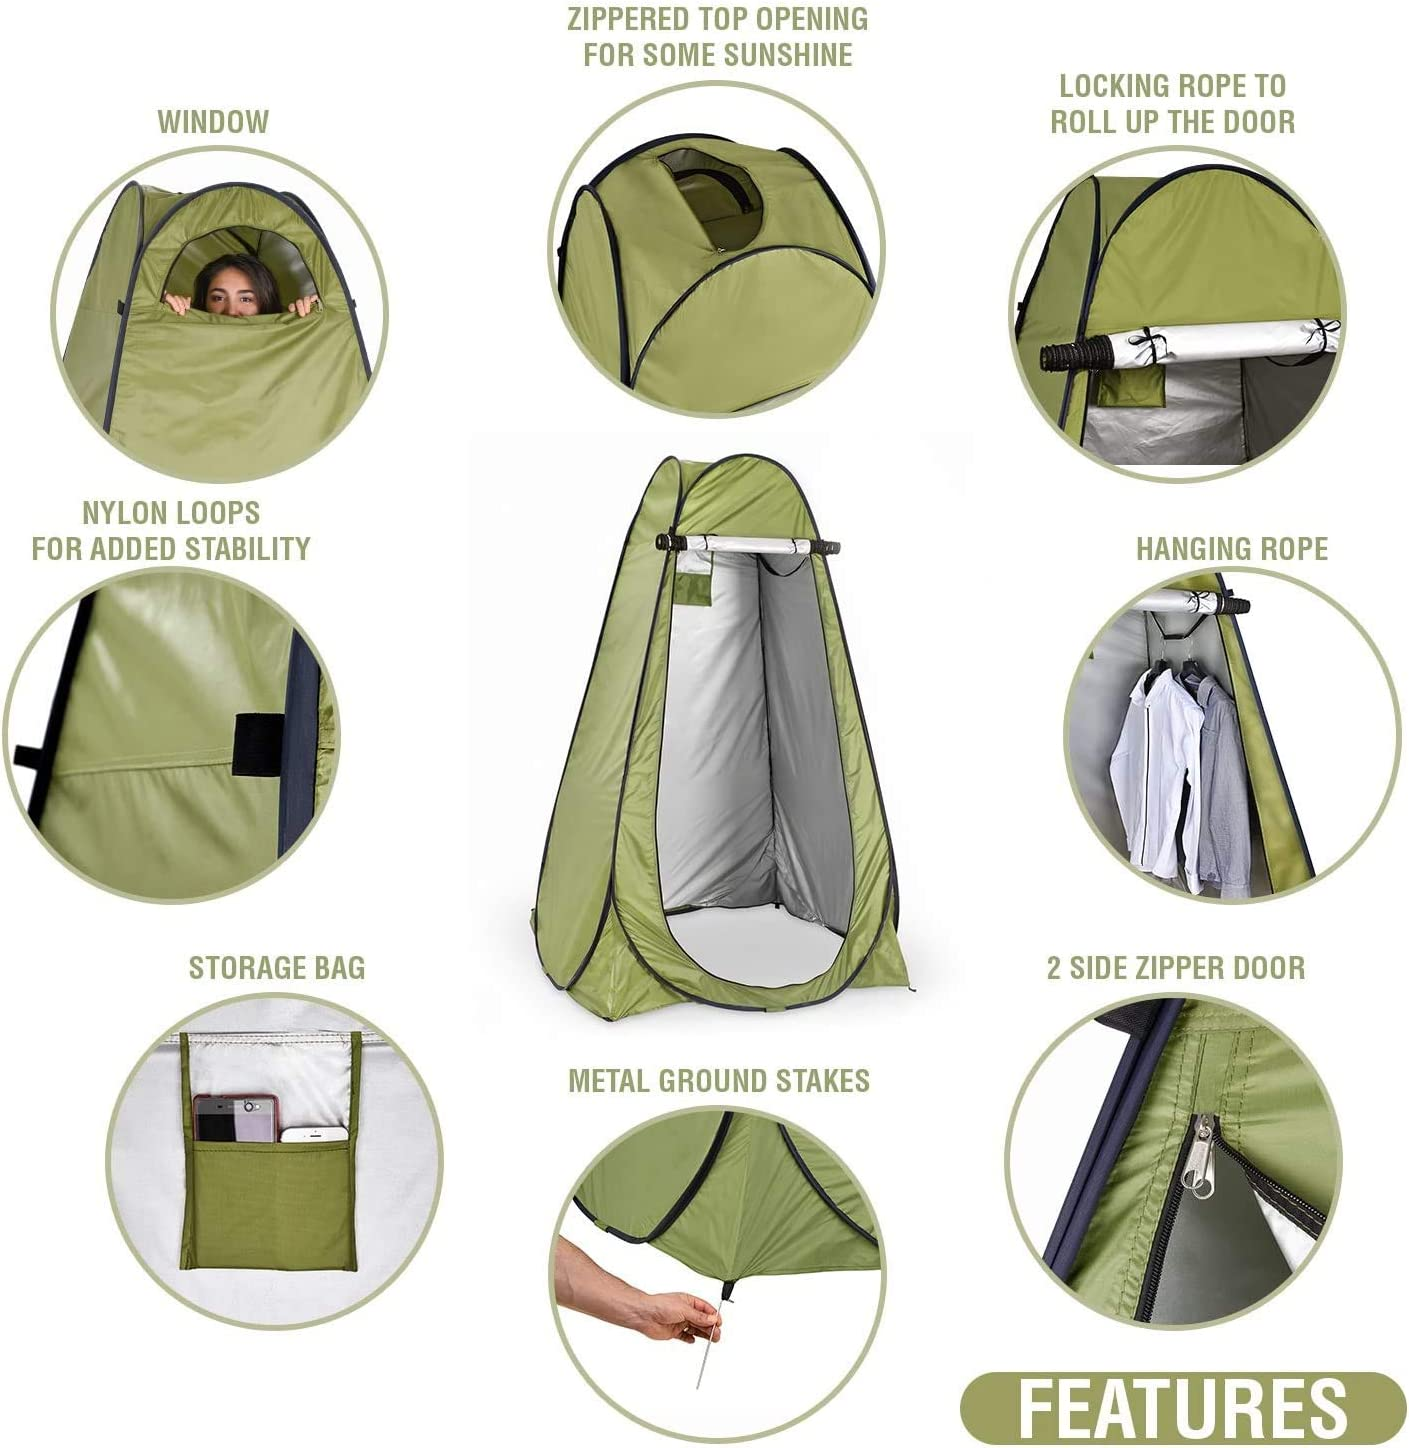 Lightweight and Sturdy Easy Set Up Futagofy Pop Up Privacy Tent Foldable with Carry Bag Instant Portable Outdoor Shower Tent Changing Room for Camping and Beach Rain Shelter with Window Camp Toilet